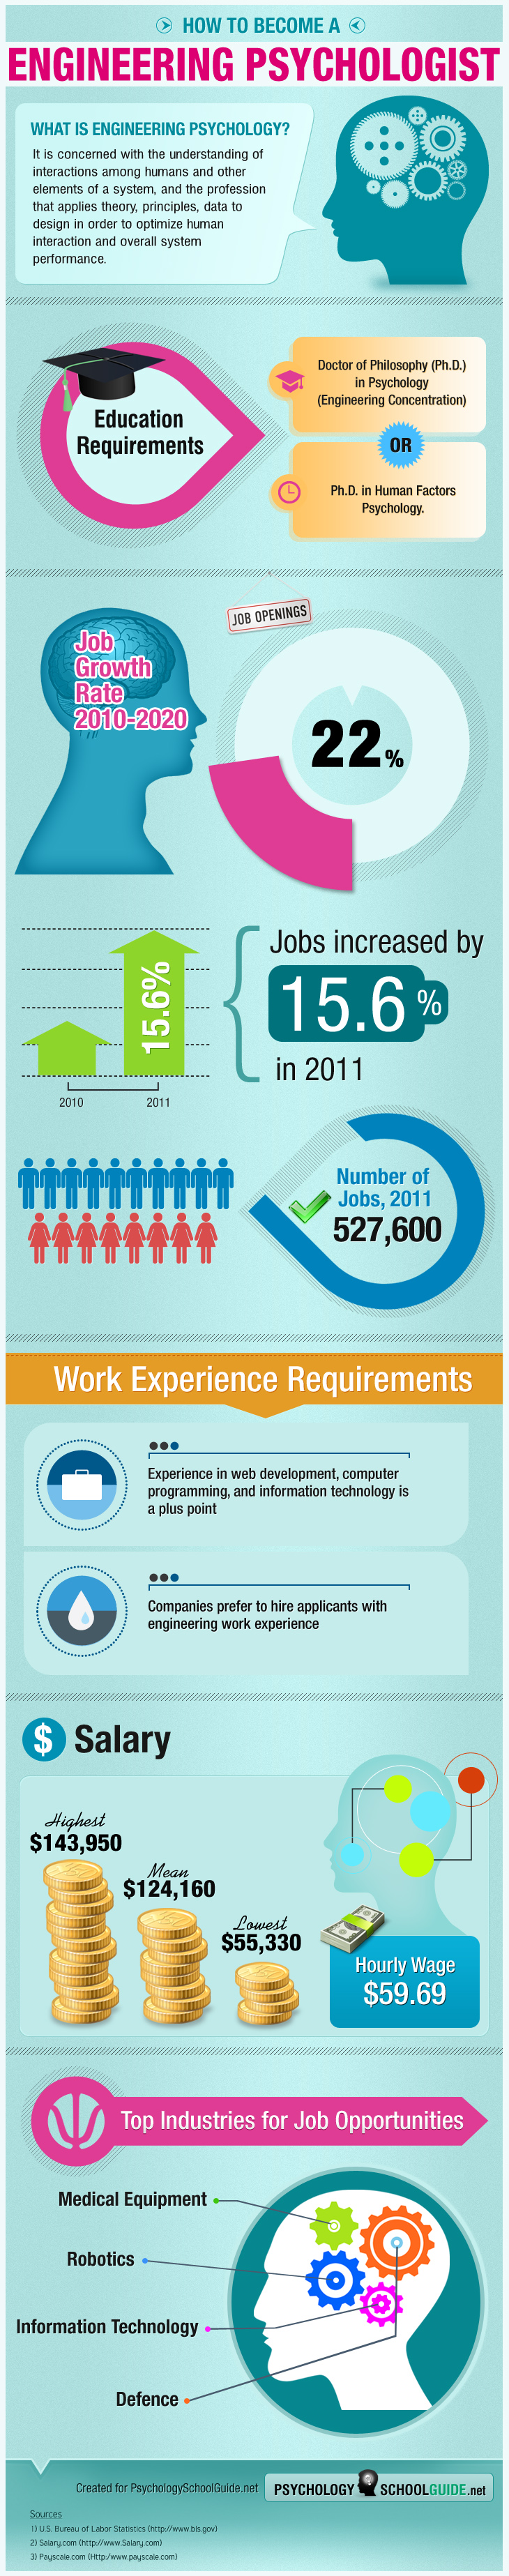 Infographics on How to Become an Engineering Psychologist